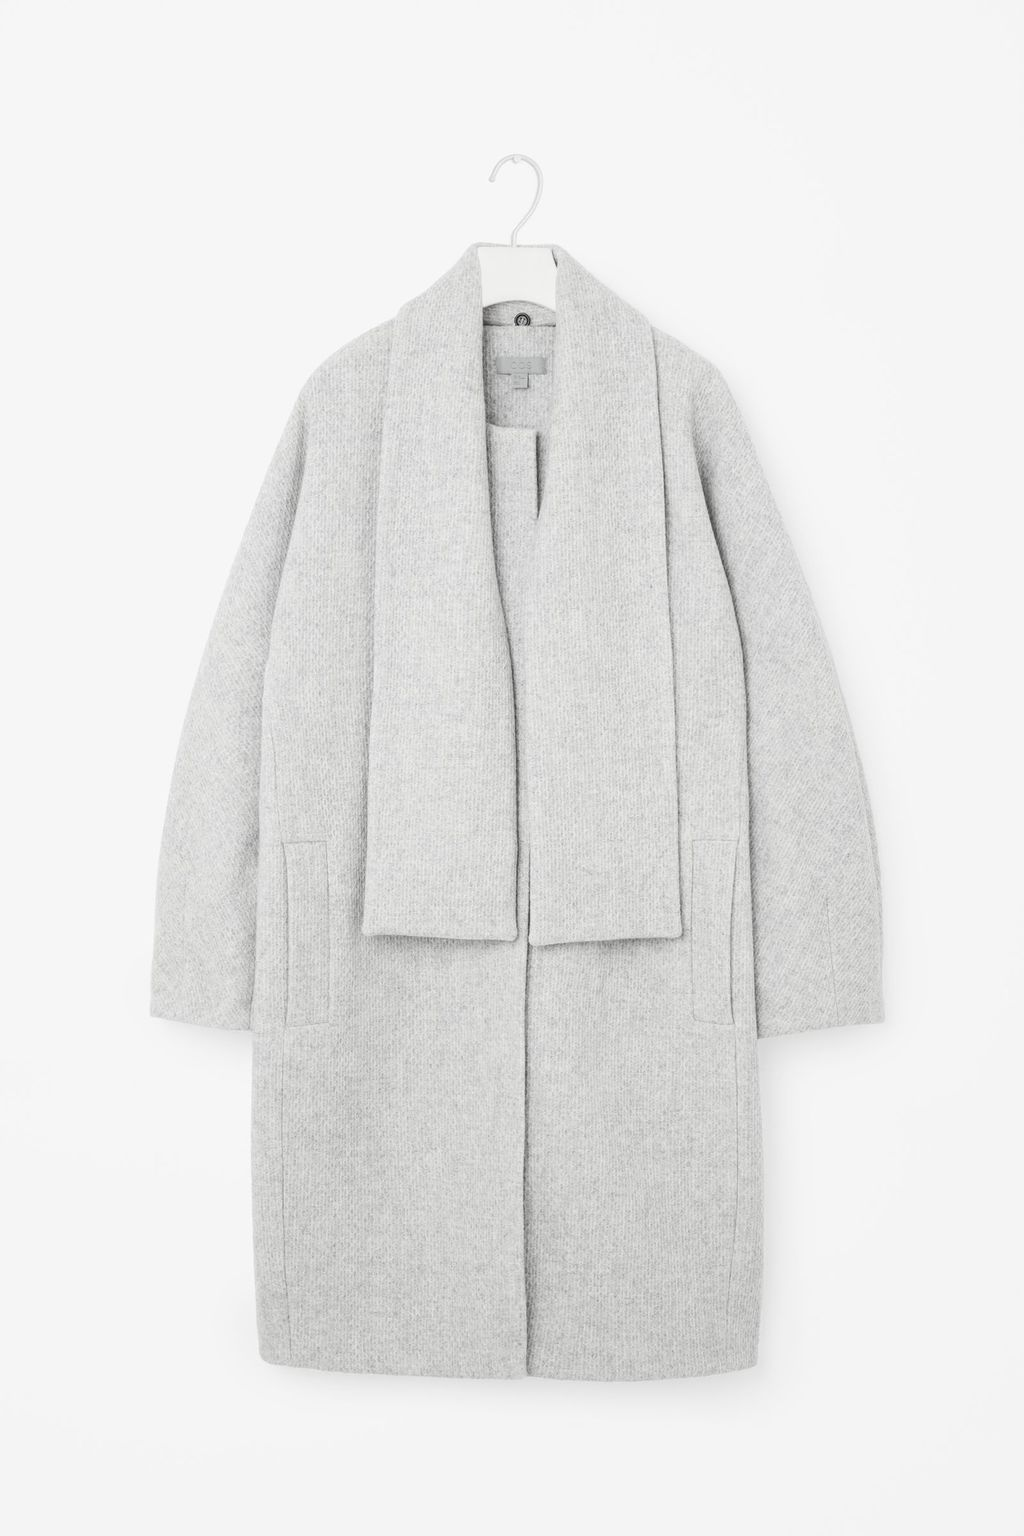 Cocoon Shaped Coat - collar: shawl/waterfall; fit: loose; length: mid thigh; predominant colour: light grey; occasions: casual, creative work; style: cocoon; fibres: wool - mix; sleeve length: long sleeve; sleeve style: standard; collar break: low/open; pattern type: fabric; pattern size: light/subtle; texture group: woven bulky/heavy; pattern: marl; wardrobe: basic; season: a/w 2016